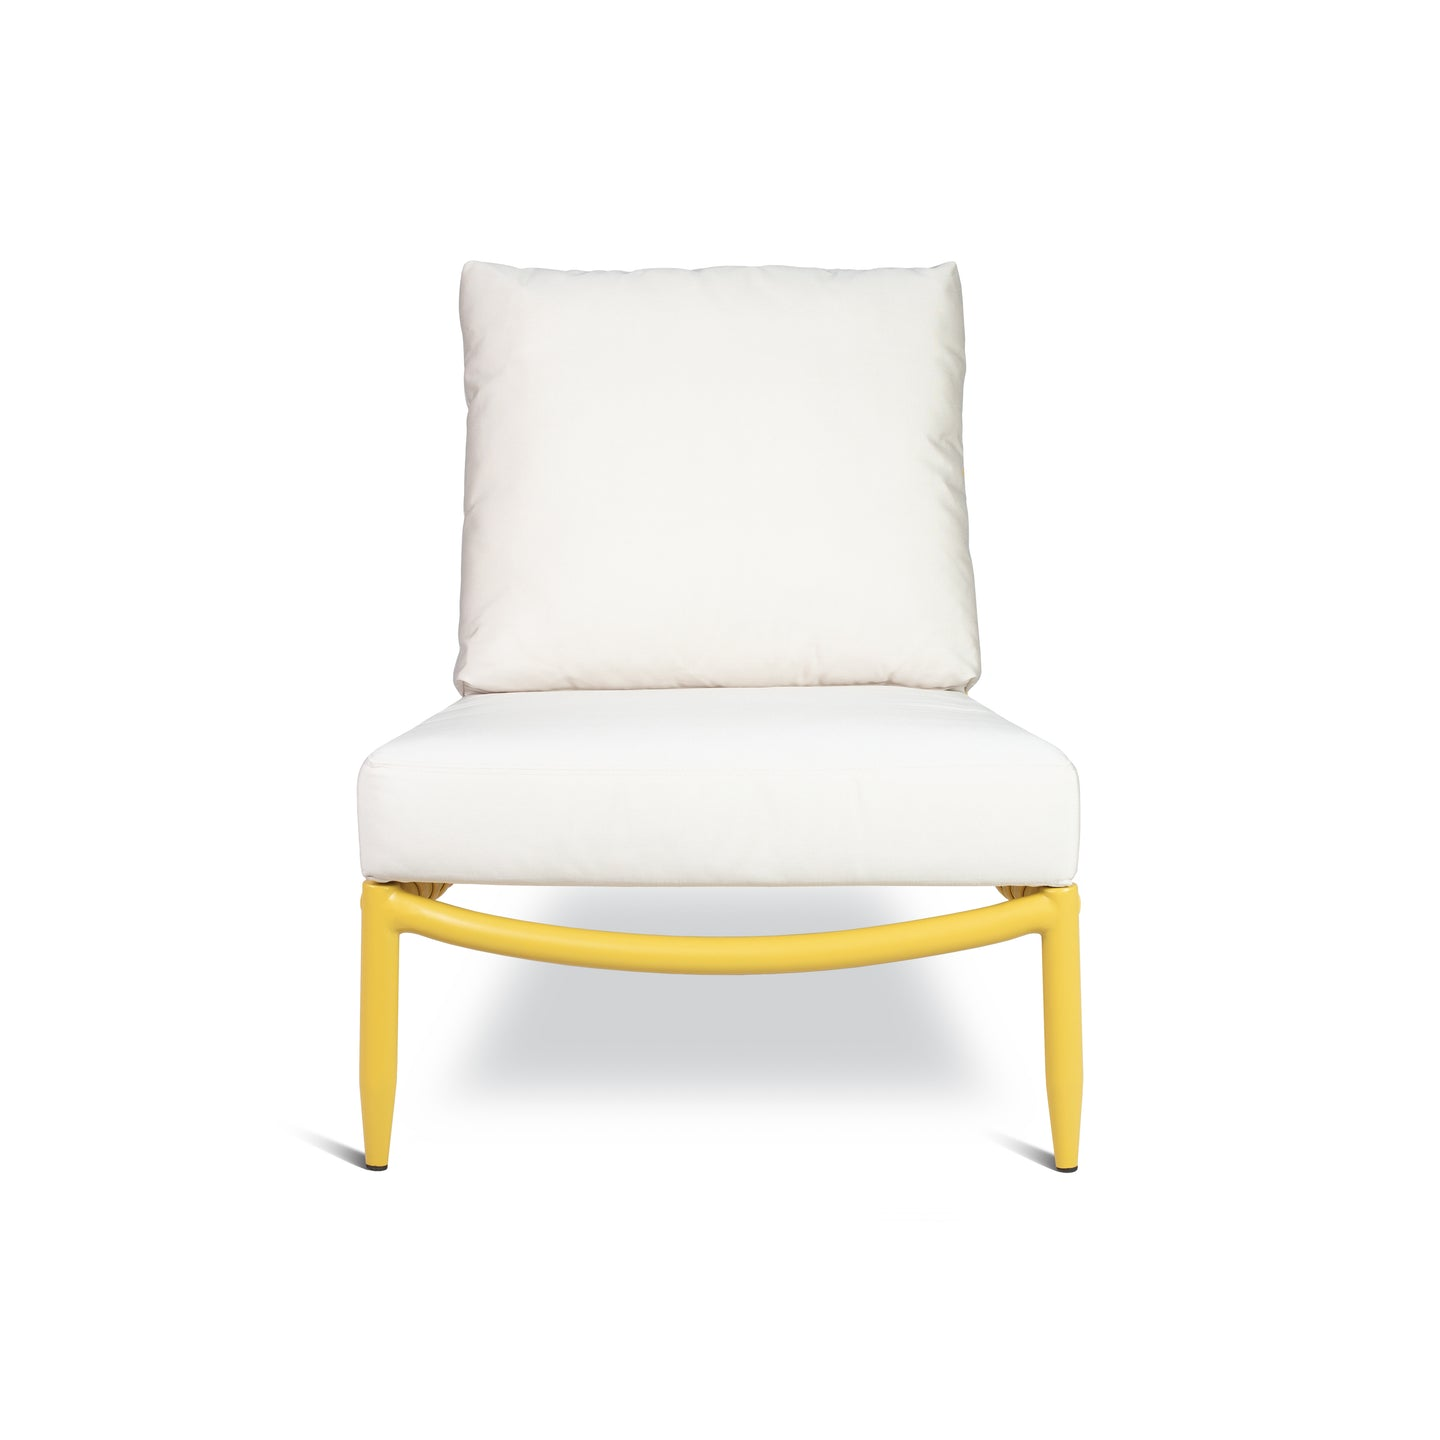 PERRY LOUNGE CHAIR IN LEMON